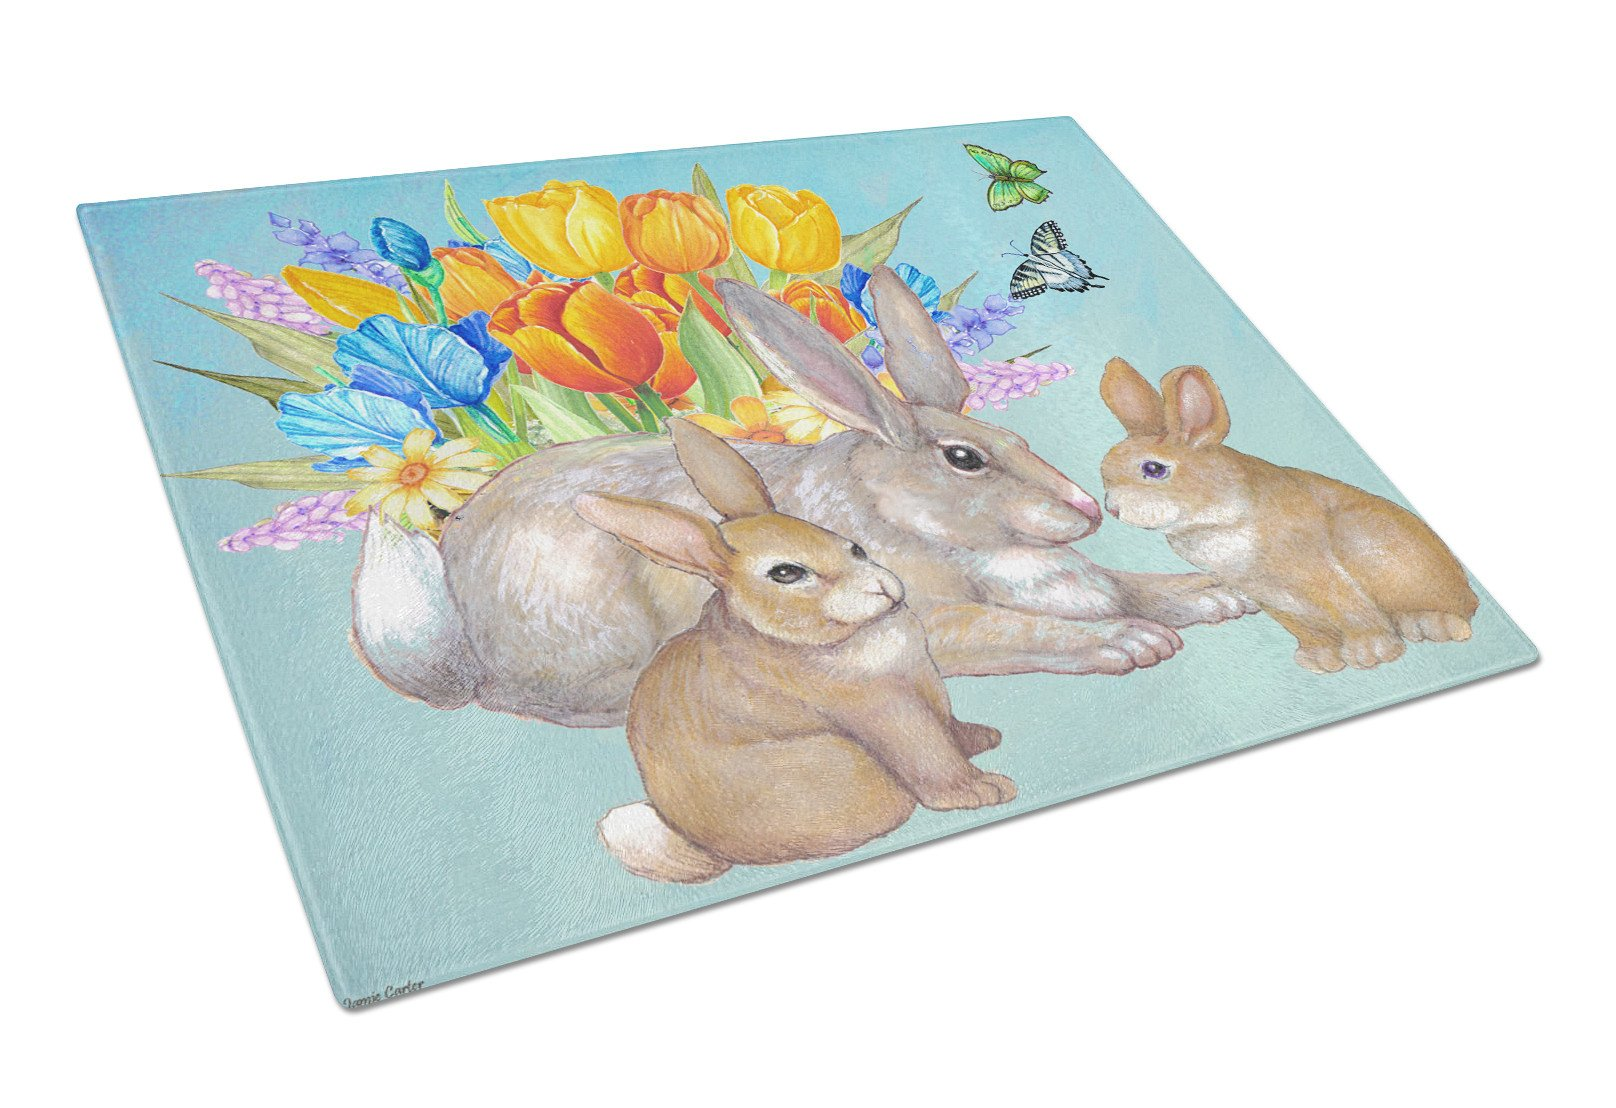 Bunny Family Easter Rabbit Glass Cutting Board Large PJC1065LCB by Caroline's Treasures